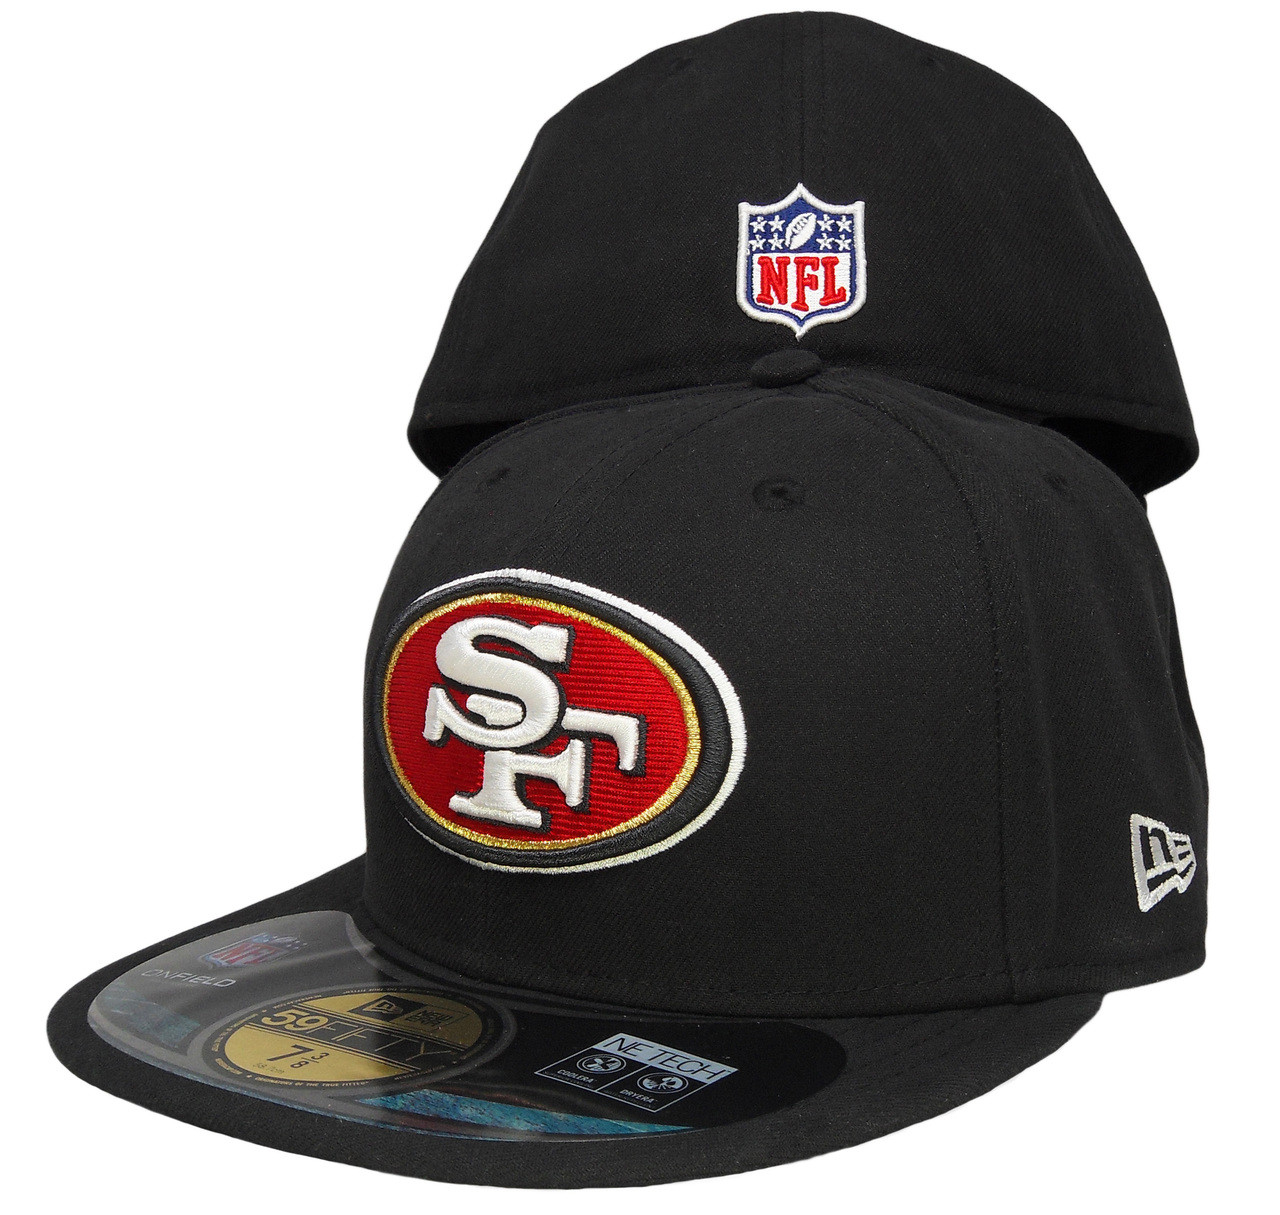 9192cf9b San Francisco 49ers New Era 59Fifty Onfield Fitted Hat - Black, Red, Gold